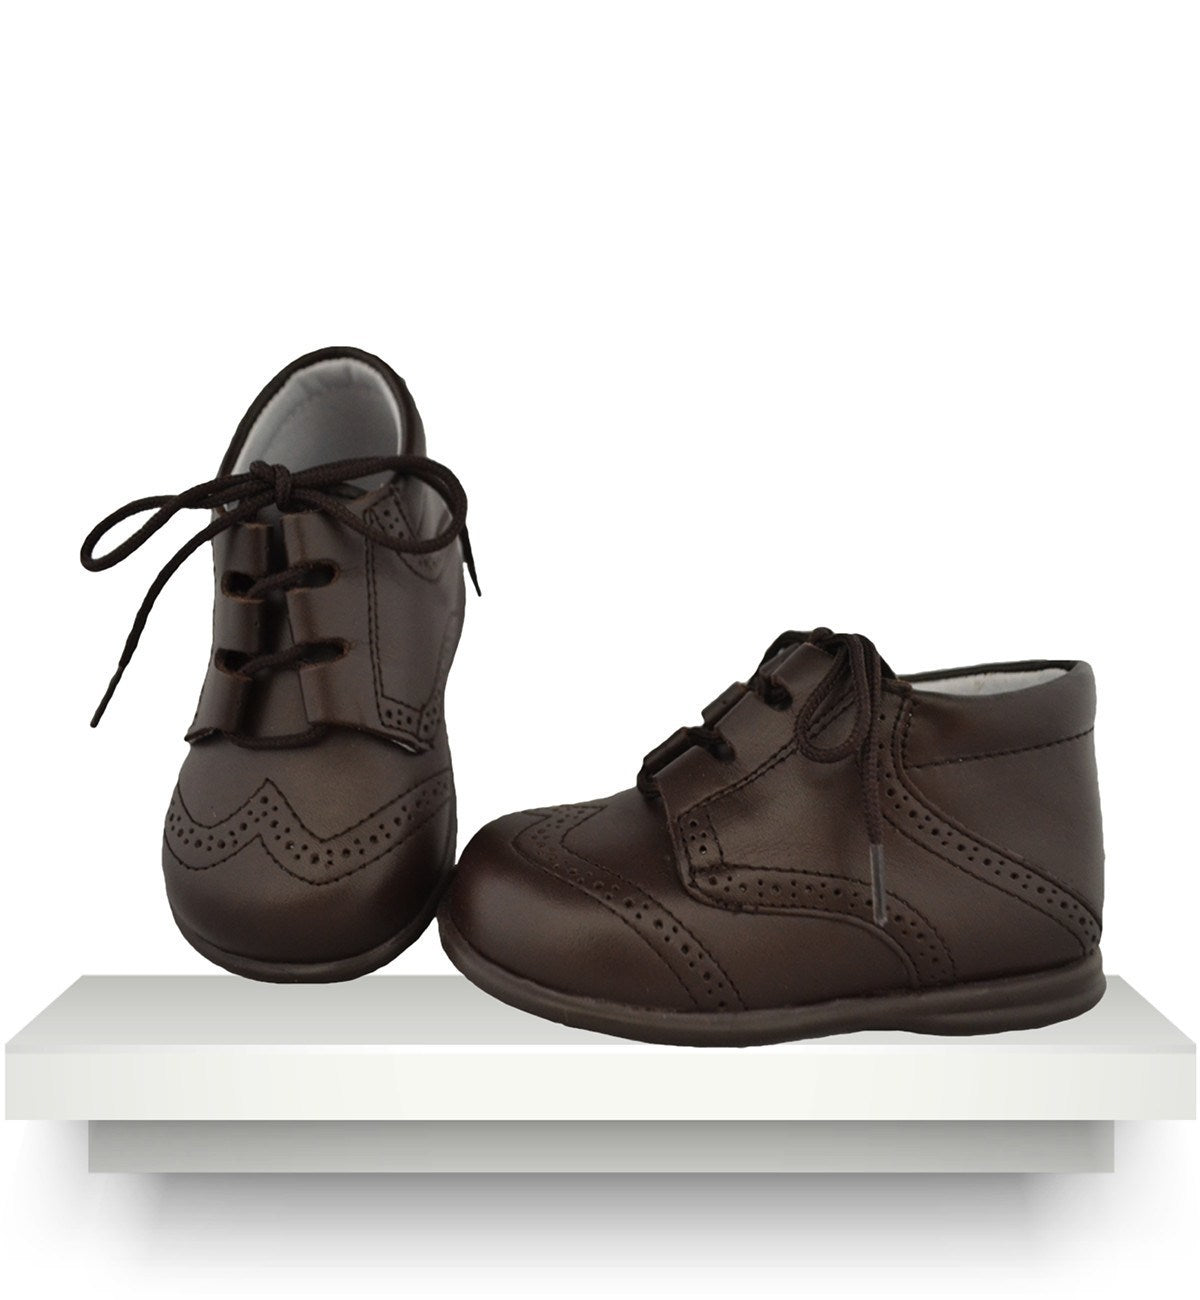 Spanish baby clothes | baby Shoes | Brown leather boots |babymaC  - 1